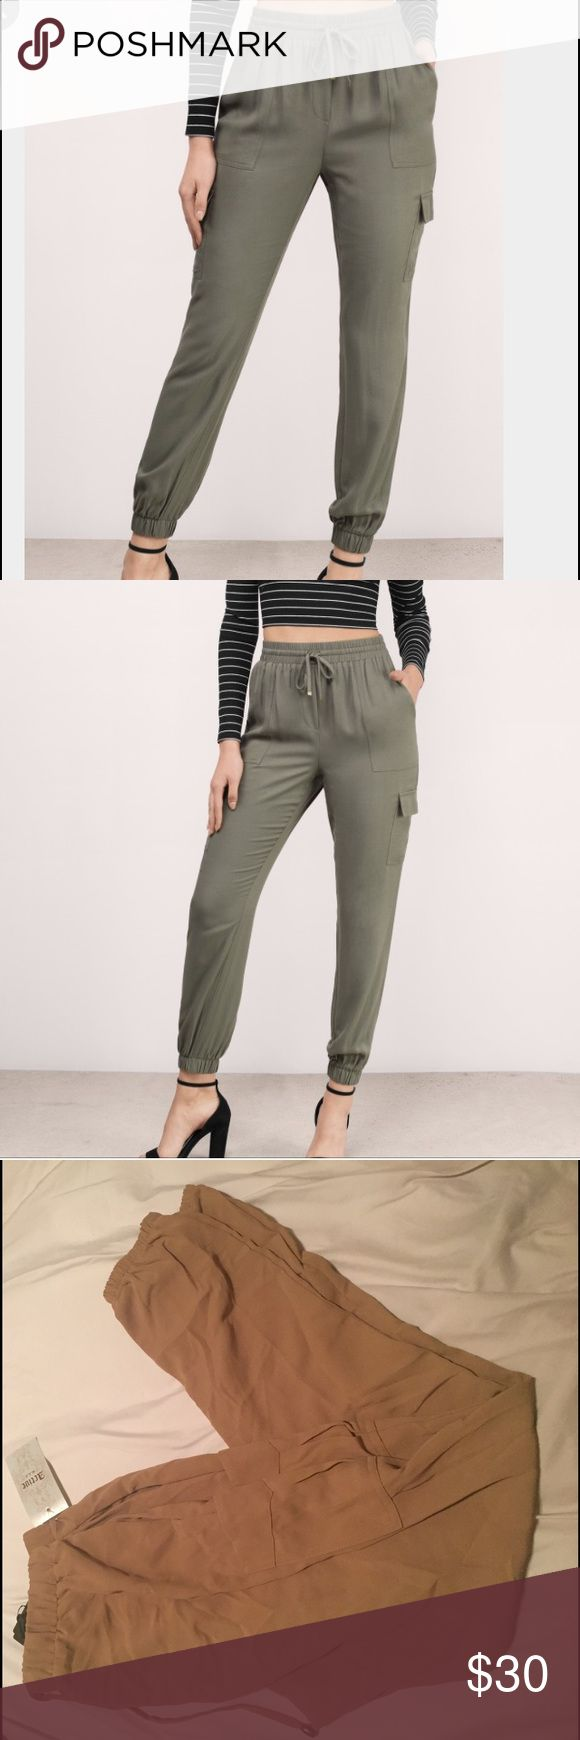 "Khaki jogger pants Add Joggers to your closet. Featuring a side patch pocket. Pair with a bodysuit and heels. Polyester  Dry Flat Waist: 28""/71.1cm Length: 40""/101.6cm Inseam: 29.5""/74.9cm Front rise: 10.5""/26.7cm Back rise: 13.5""/34.3cm At leg opening (Elastic): 10""/25.4cm Side pockets Self tie waist fastener Measured in size Small Pants Track Pants & Joggers"